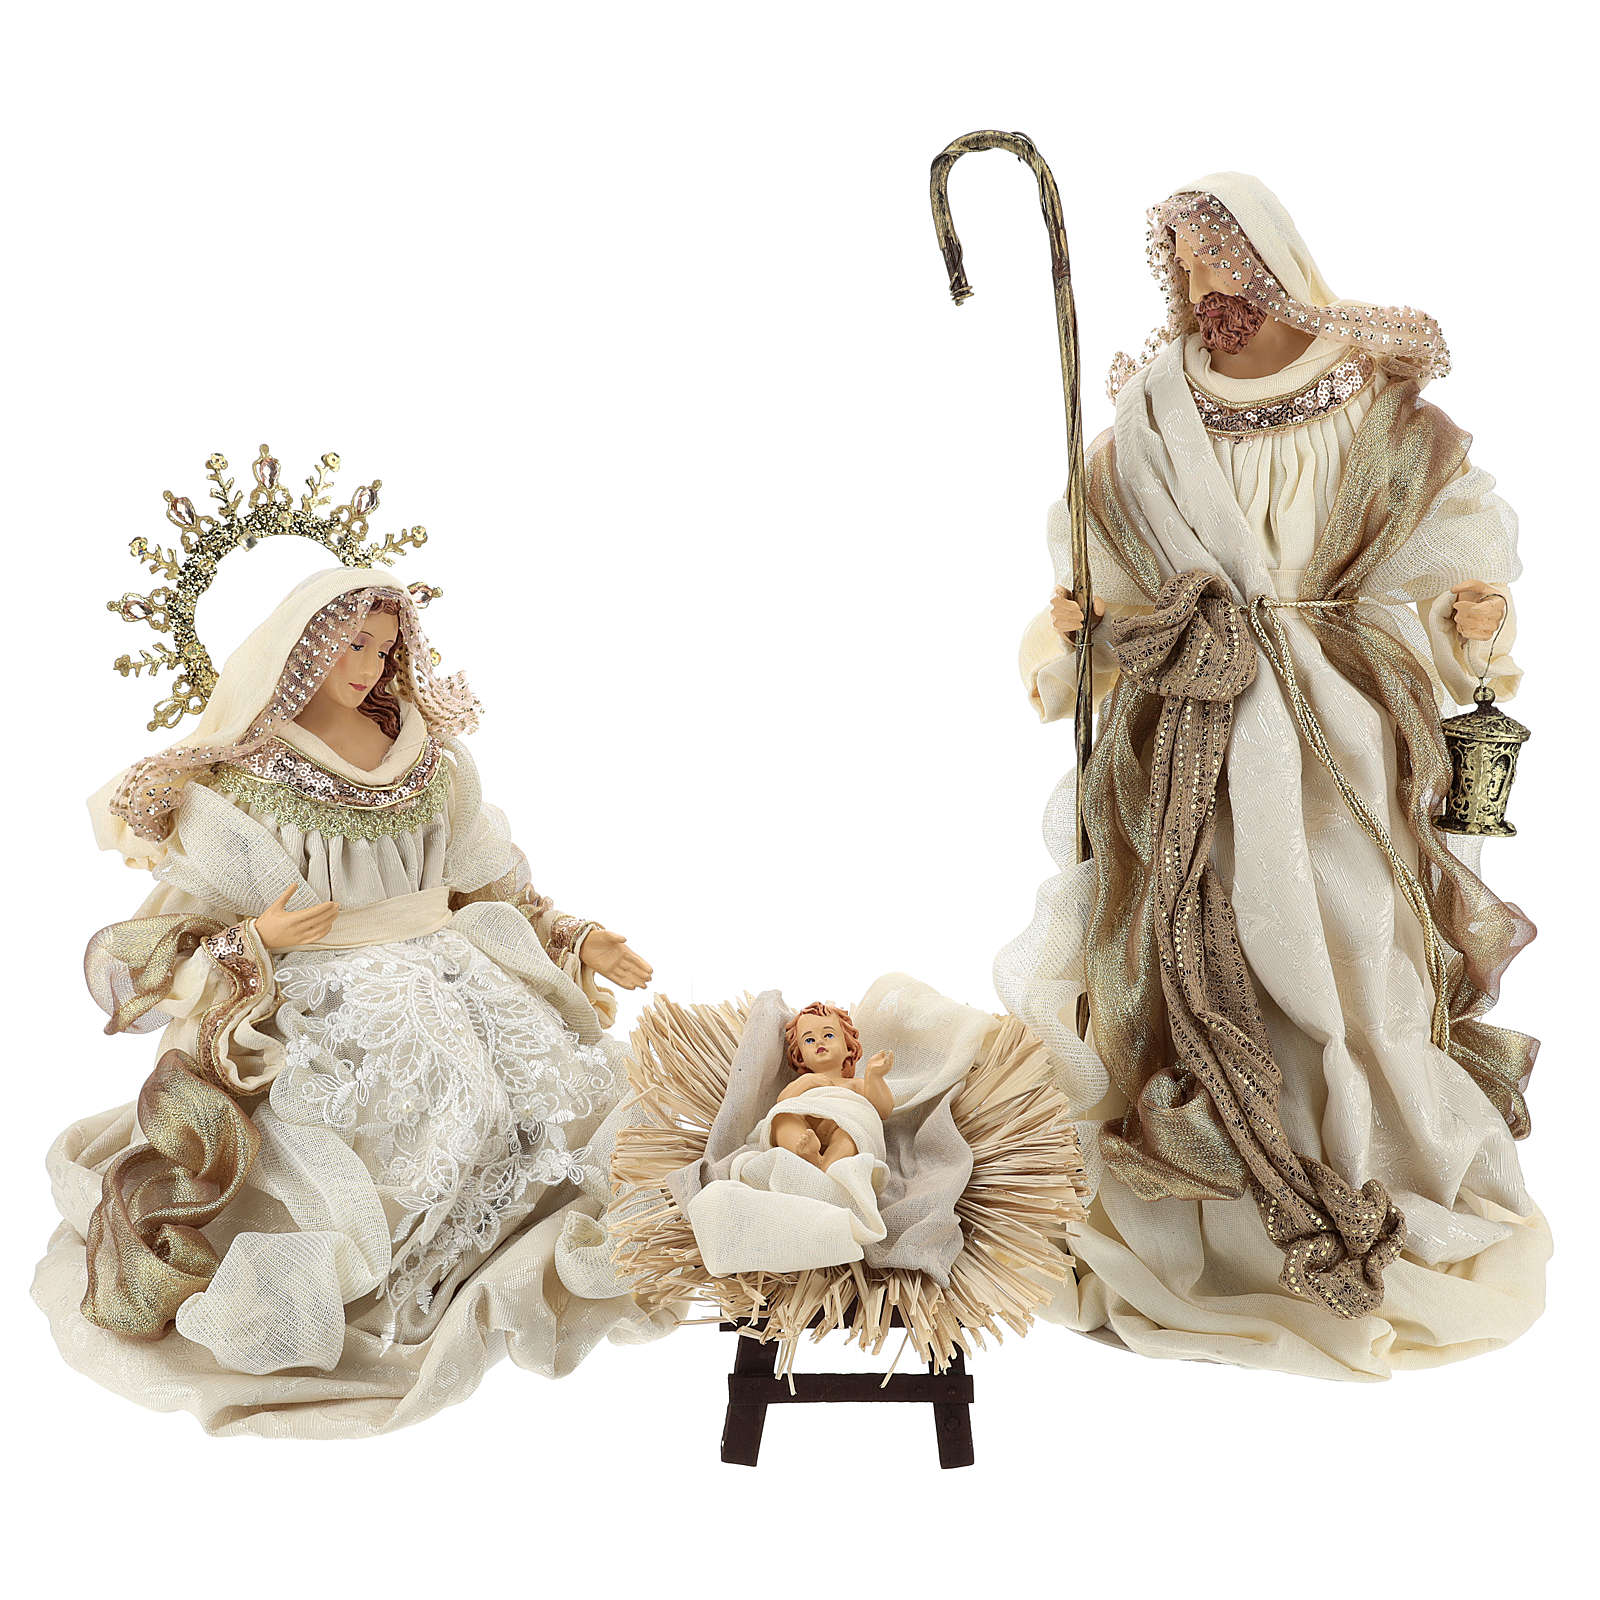 Nativity 3 pieces 46 cm Beige Gold finish resin fabric 3